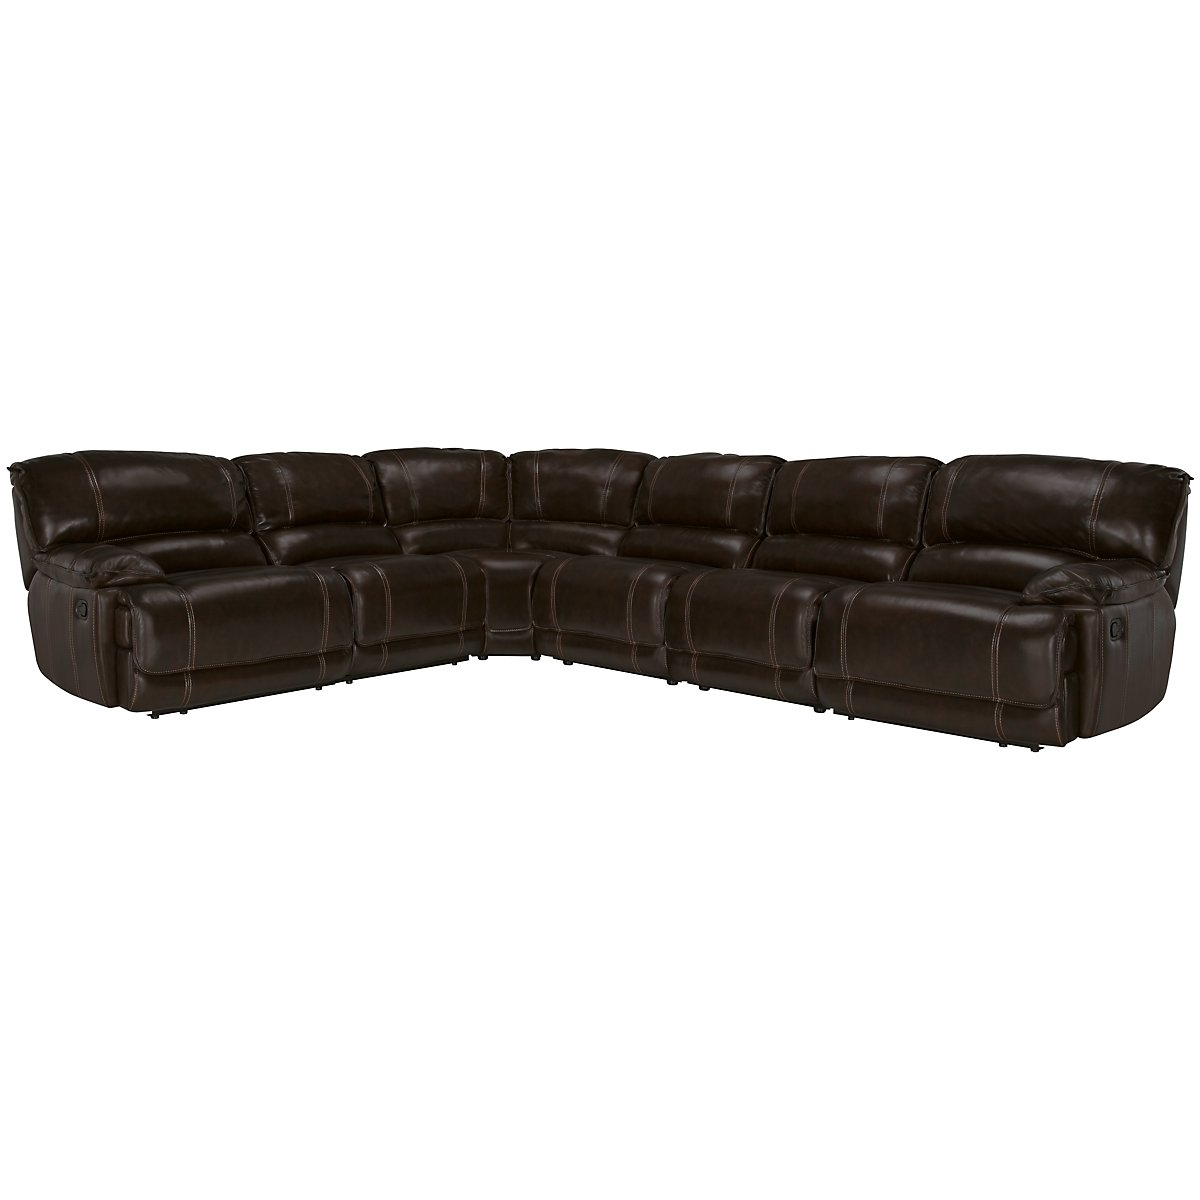 Benson Dark Brown Leather & Vinyl Large Two-Arm Power Reclining Sectional